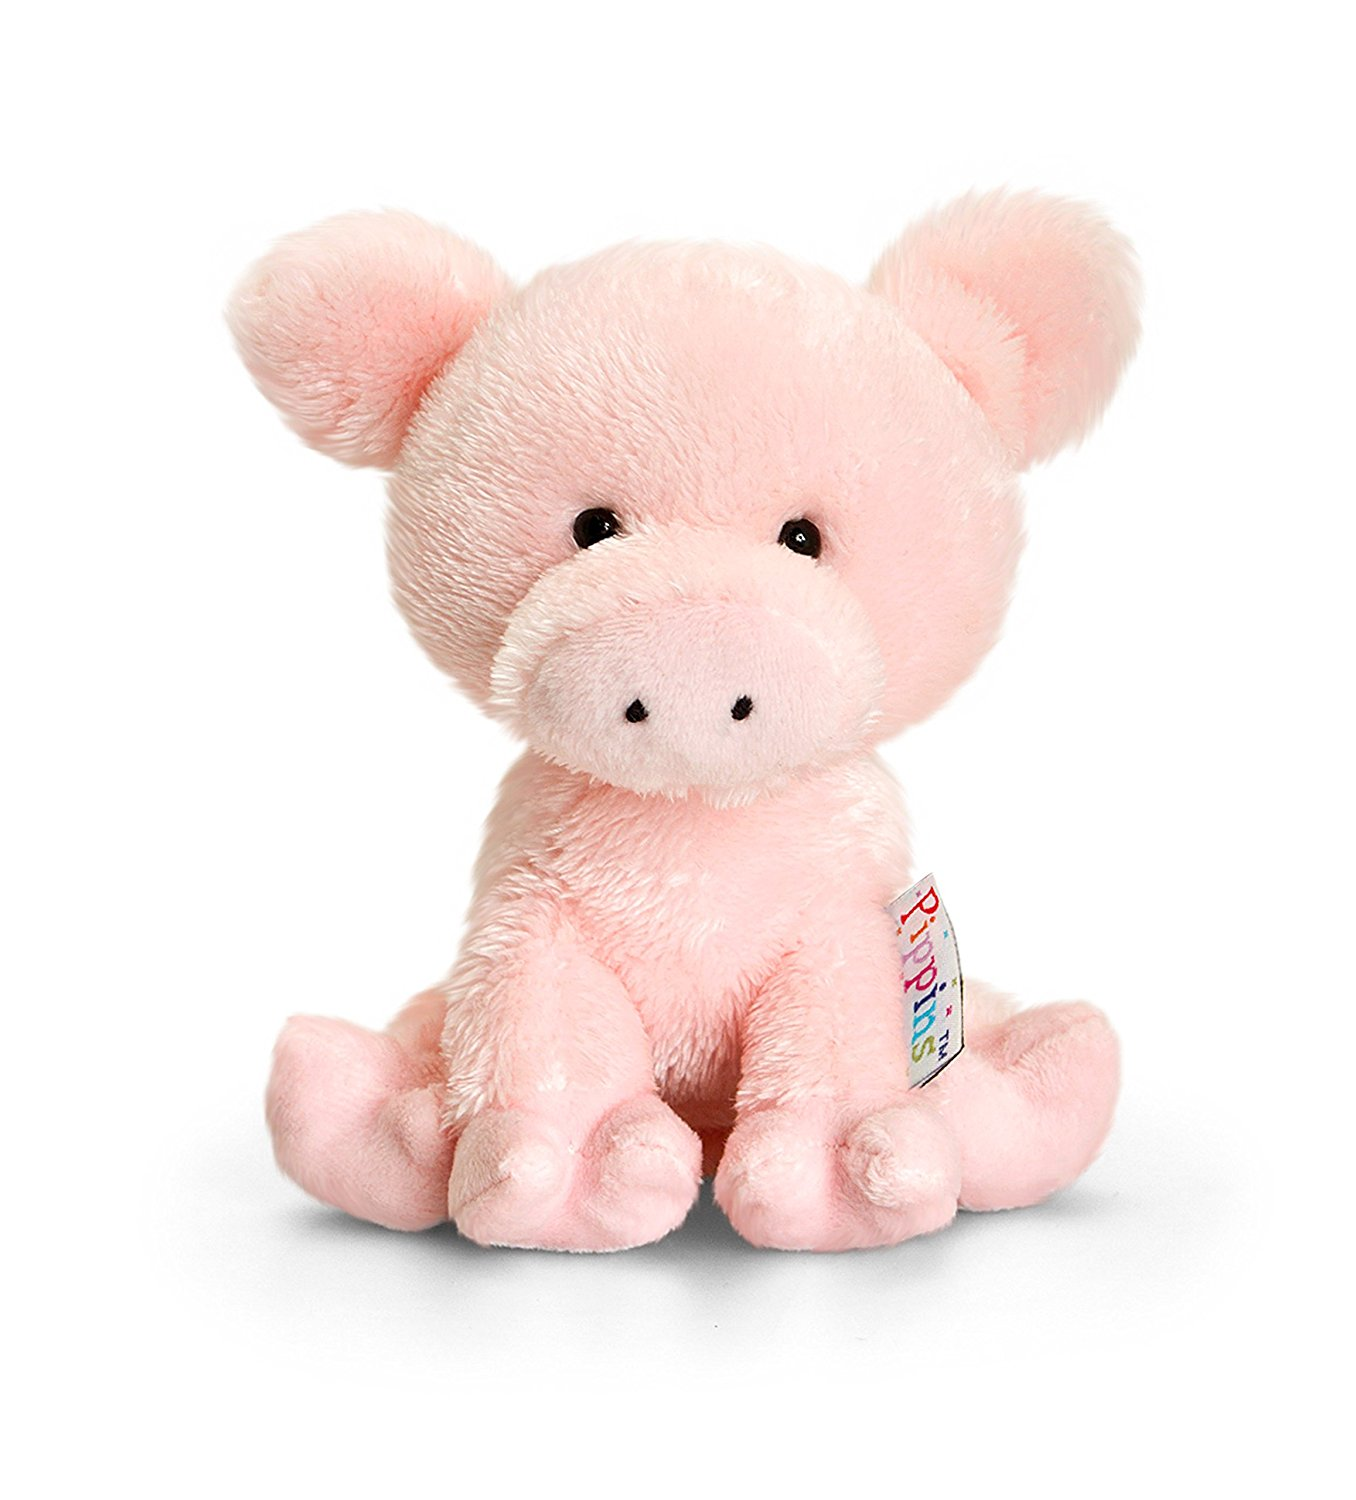 Keel Toys 14 cm Pippins Pig: Amazon.co.uk: Toys & Games